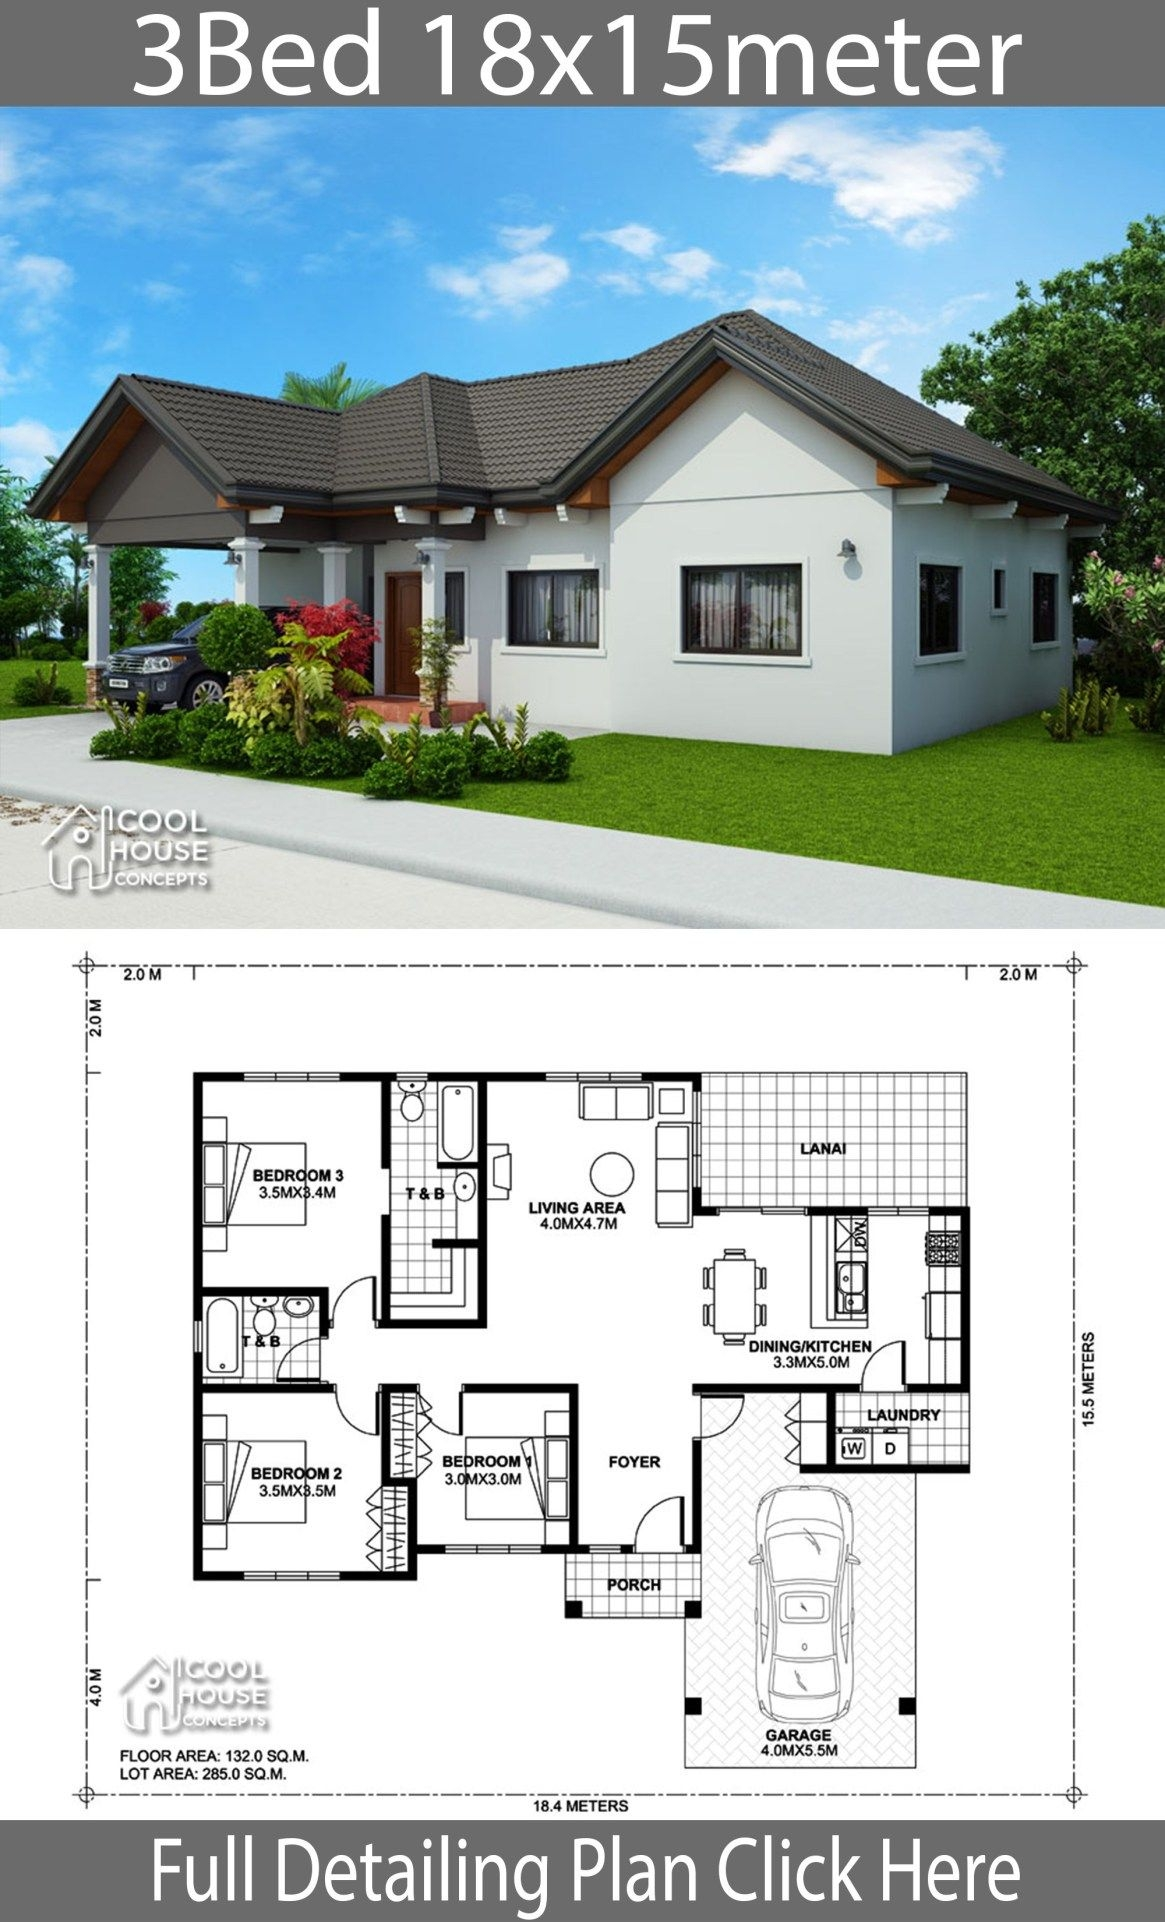 fc6419d c49bb98bd15 on Modern House Designs Pictures Gallery id=1005770